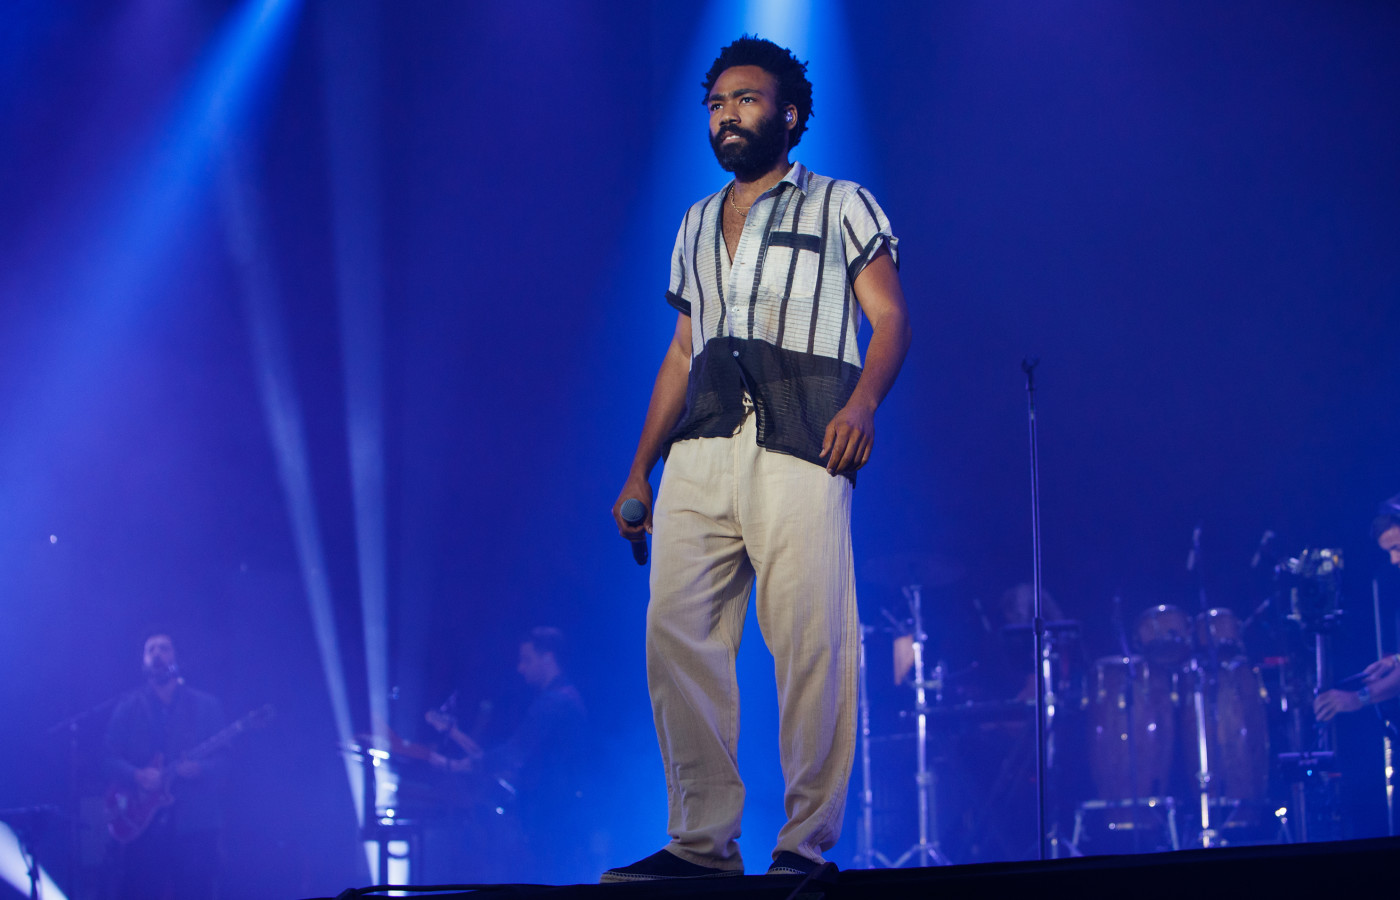 Donald Glover at Lovebox Festival 2018